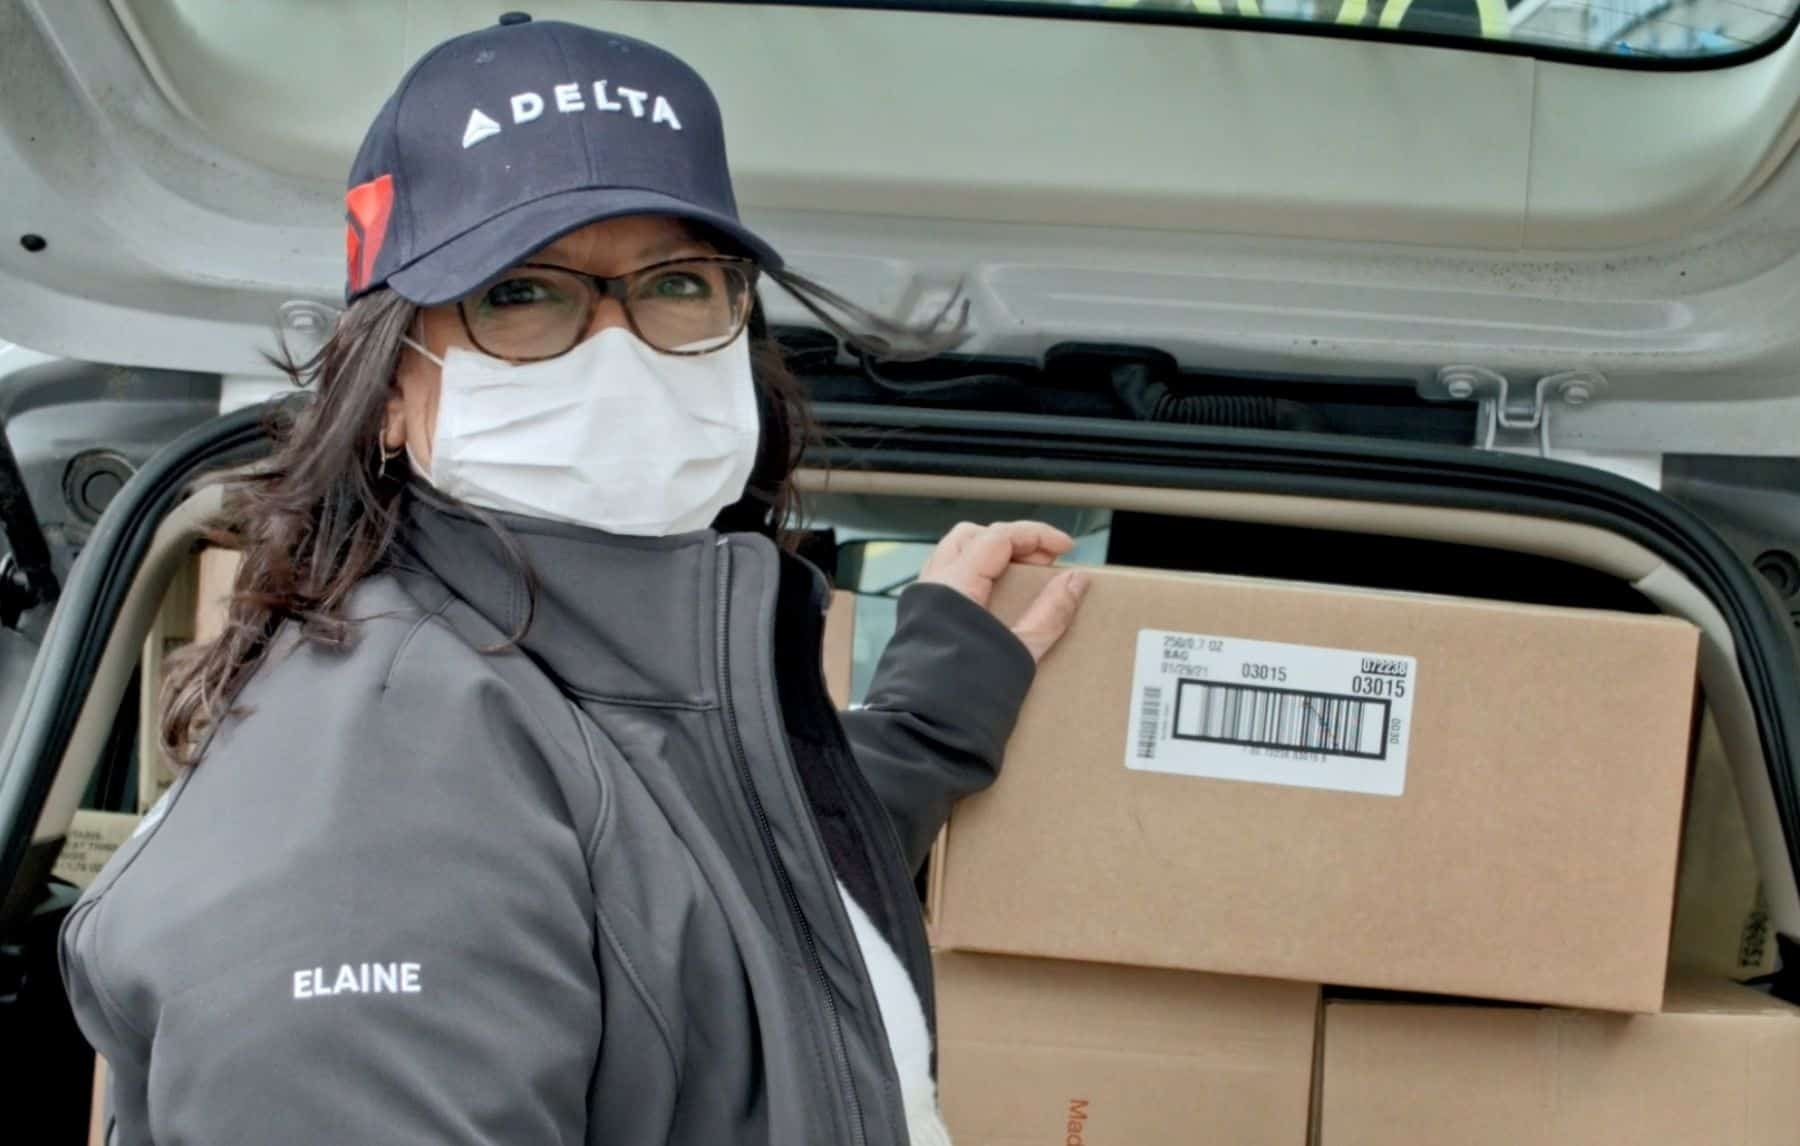 From disaster survivors to COVID warriors, Delta is there when communities need support